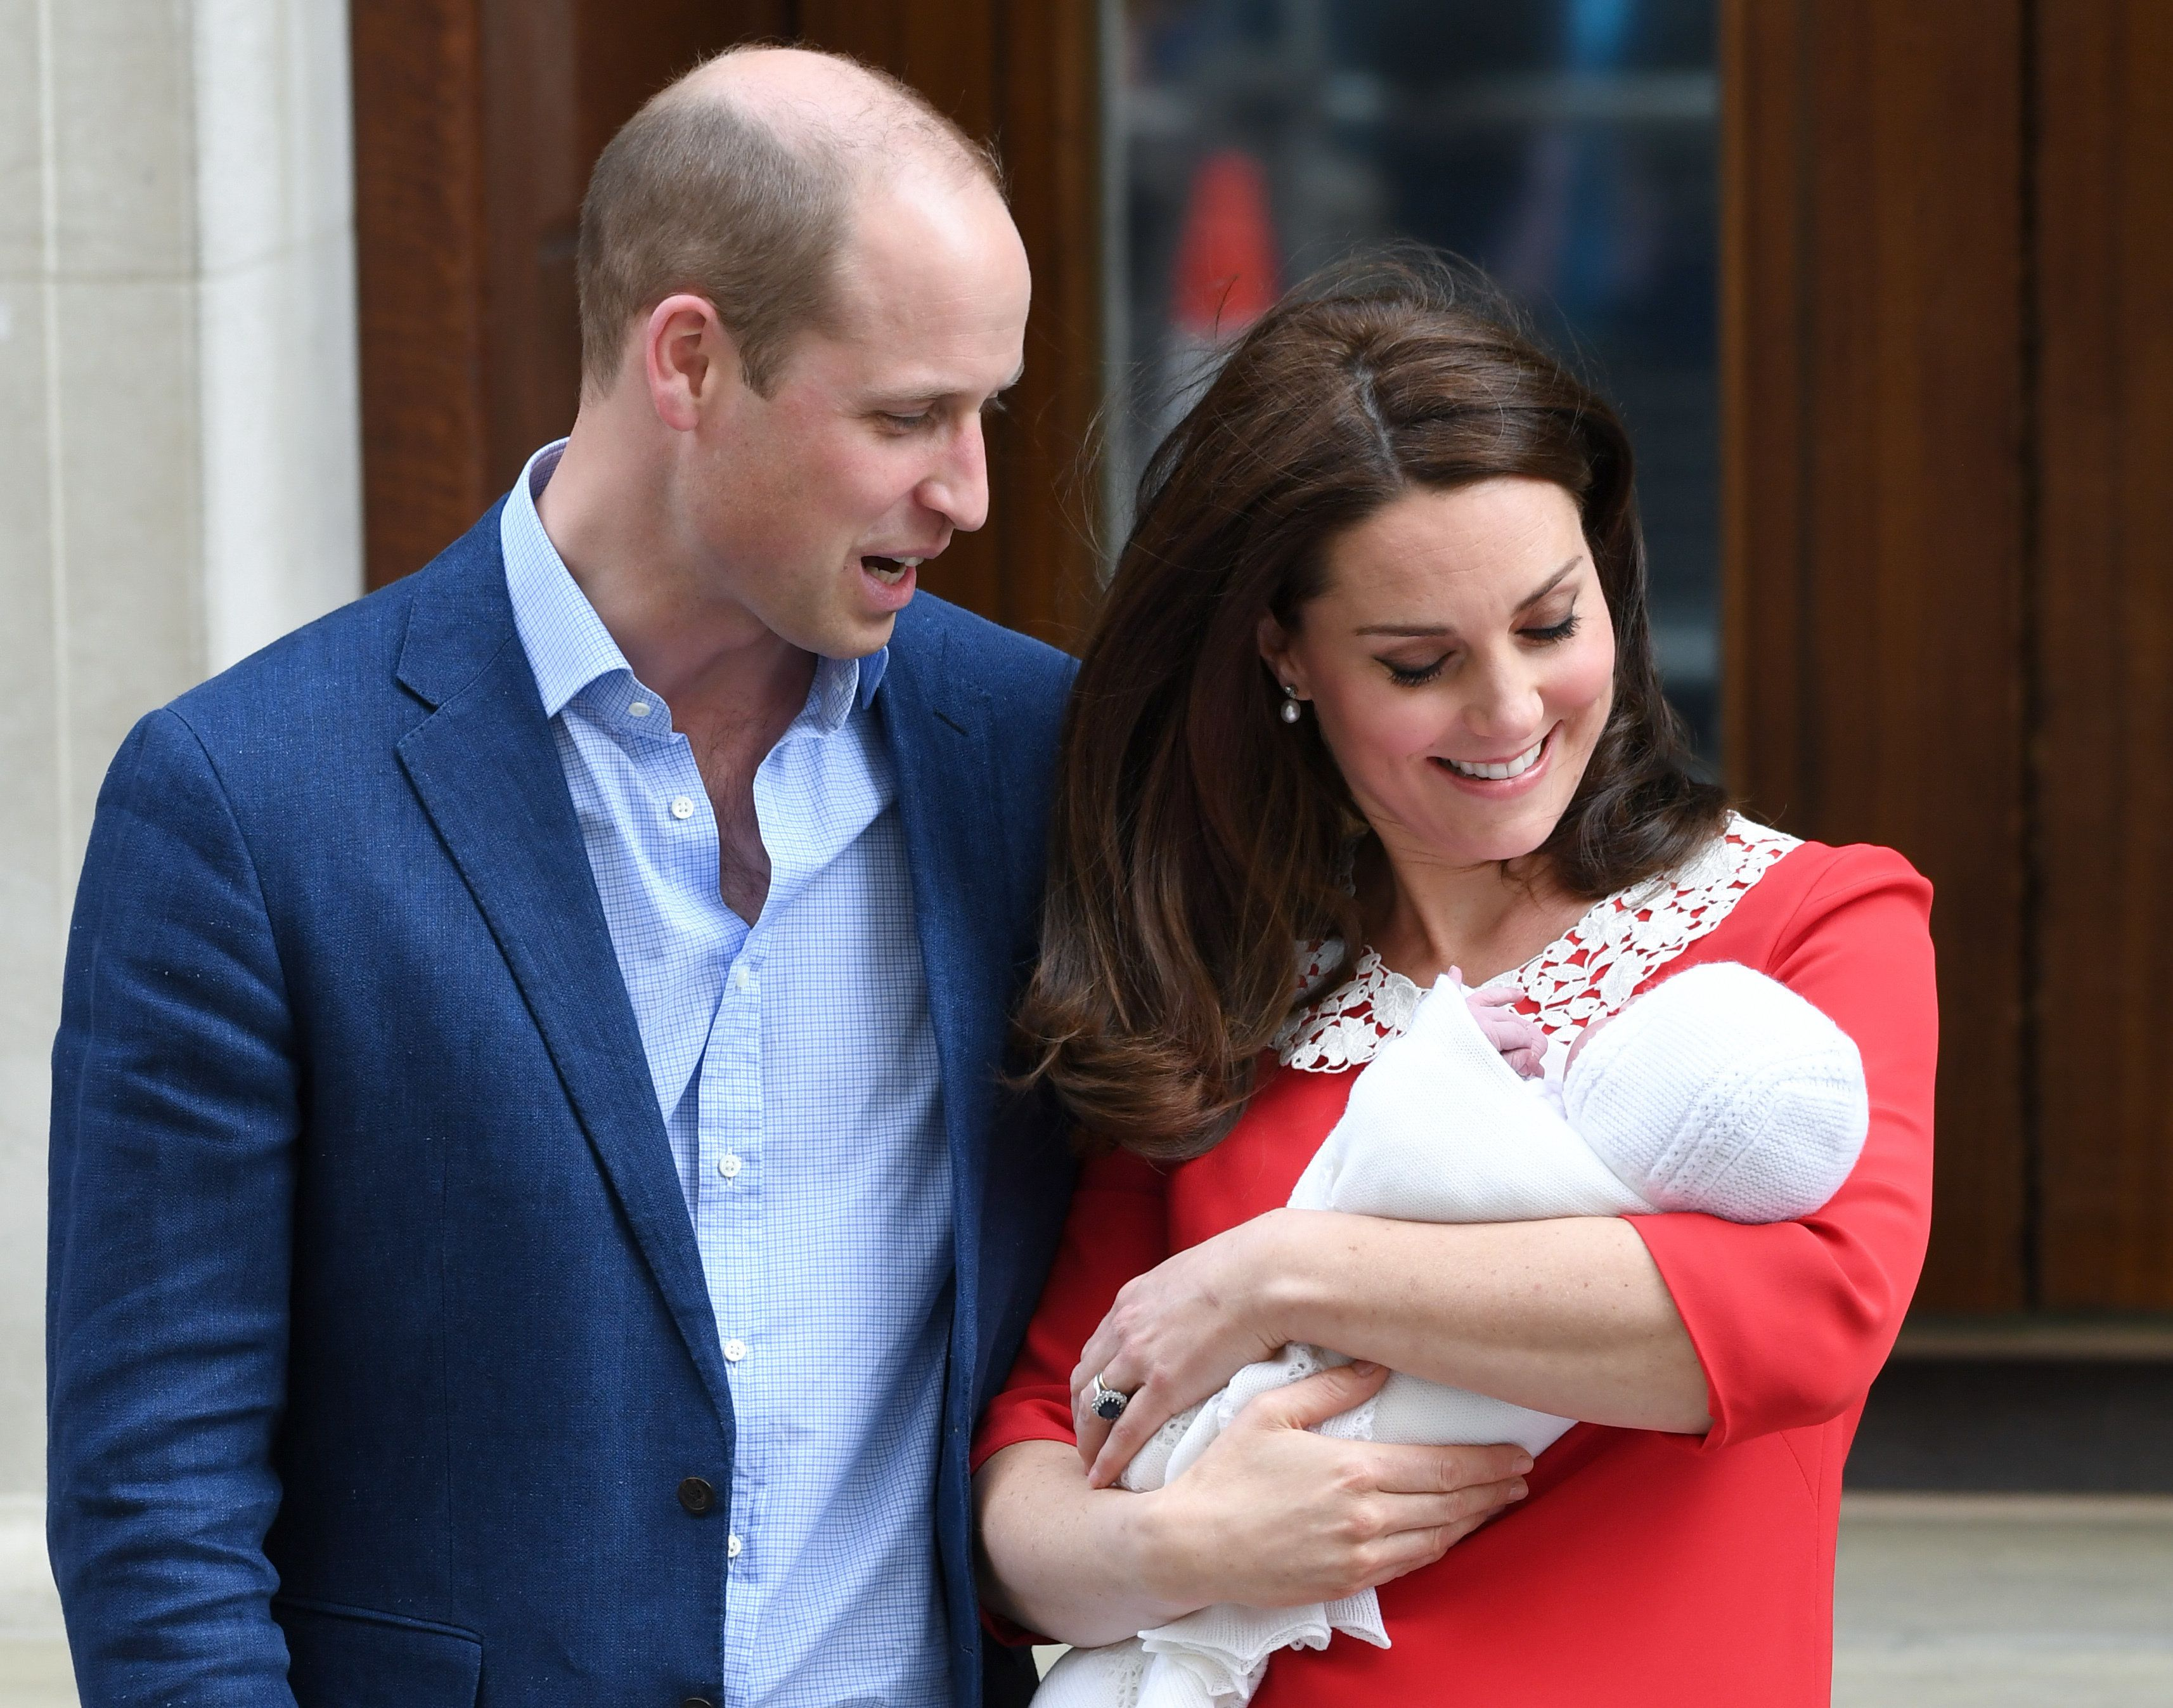 Wanna Know The Name(s) Of The New Royal Baby? Look No